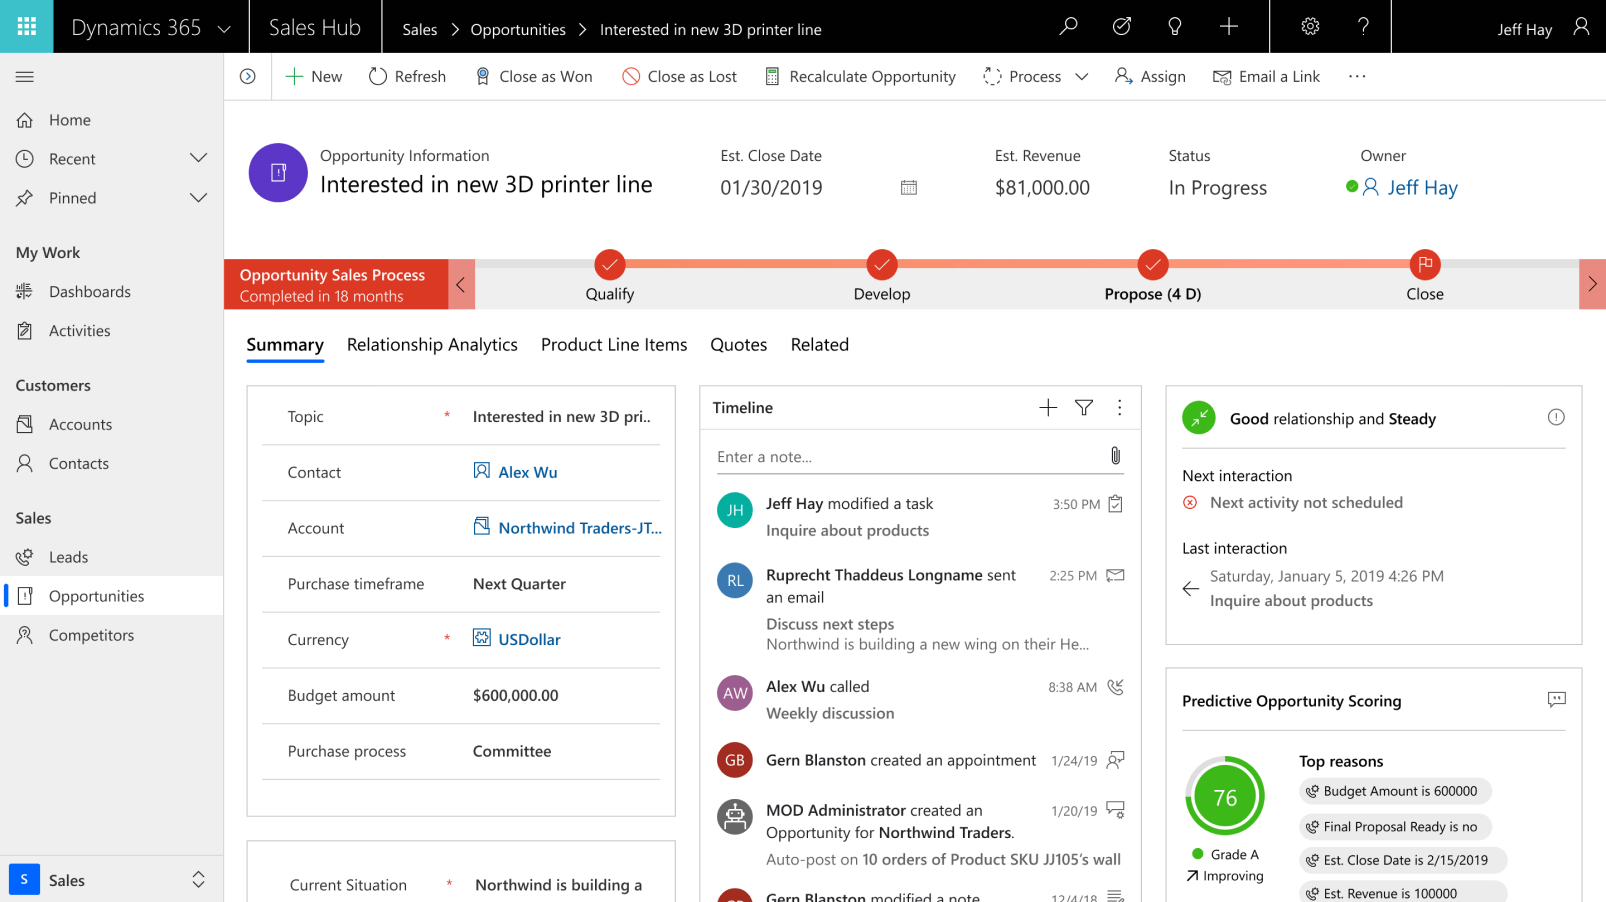 Dynamics 365 for Sales Screenshot 2019/11